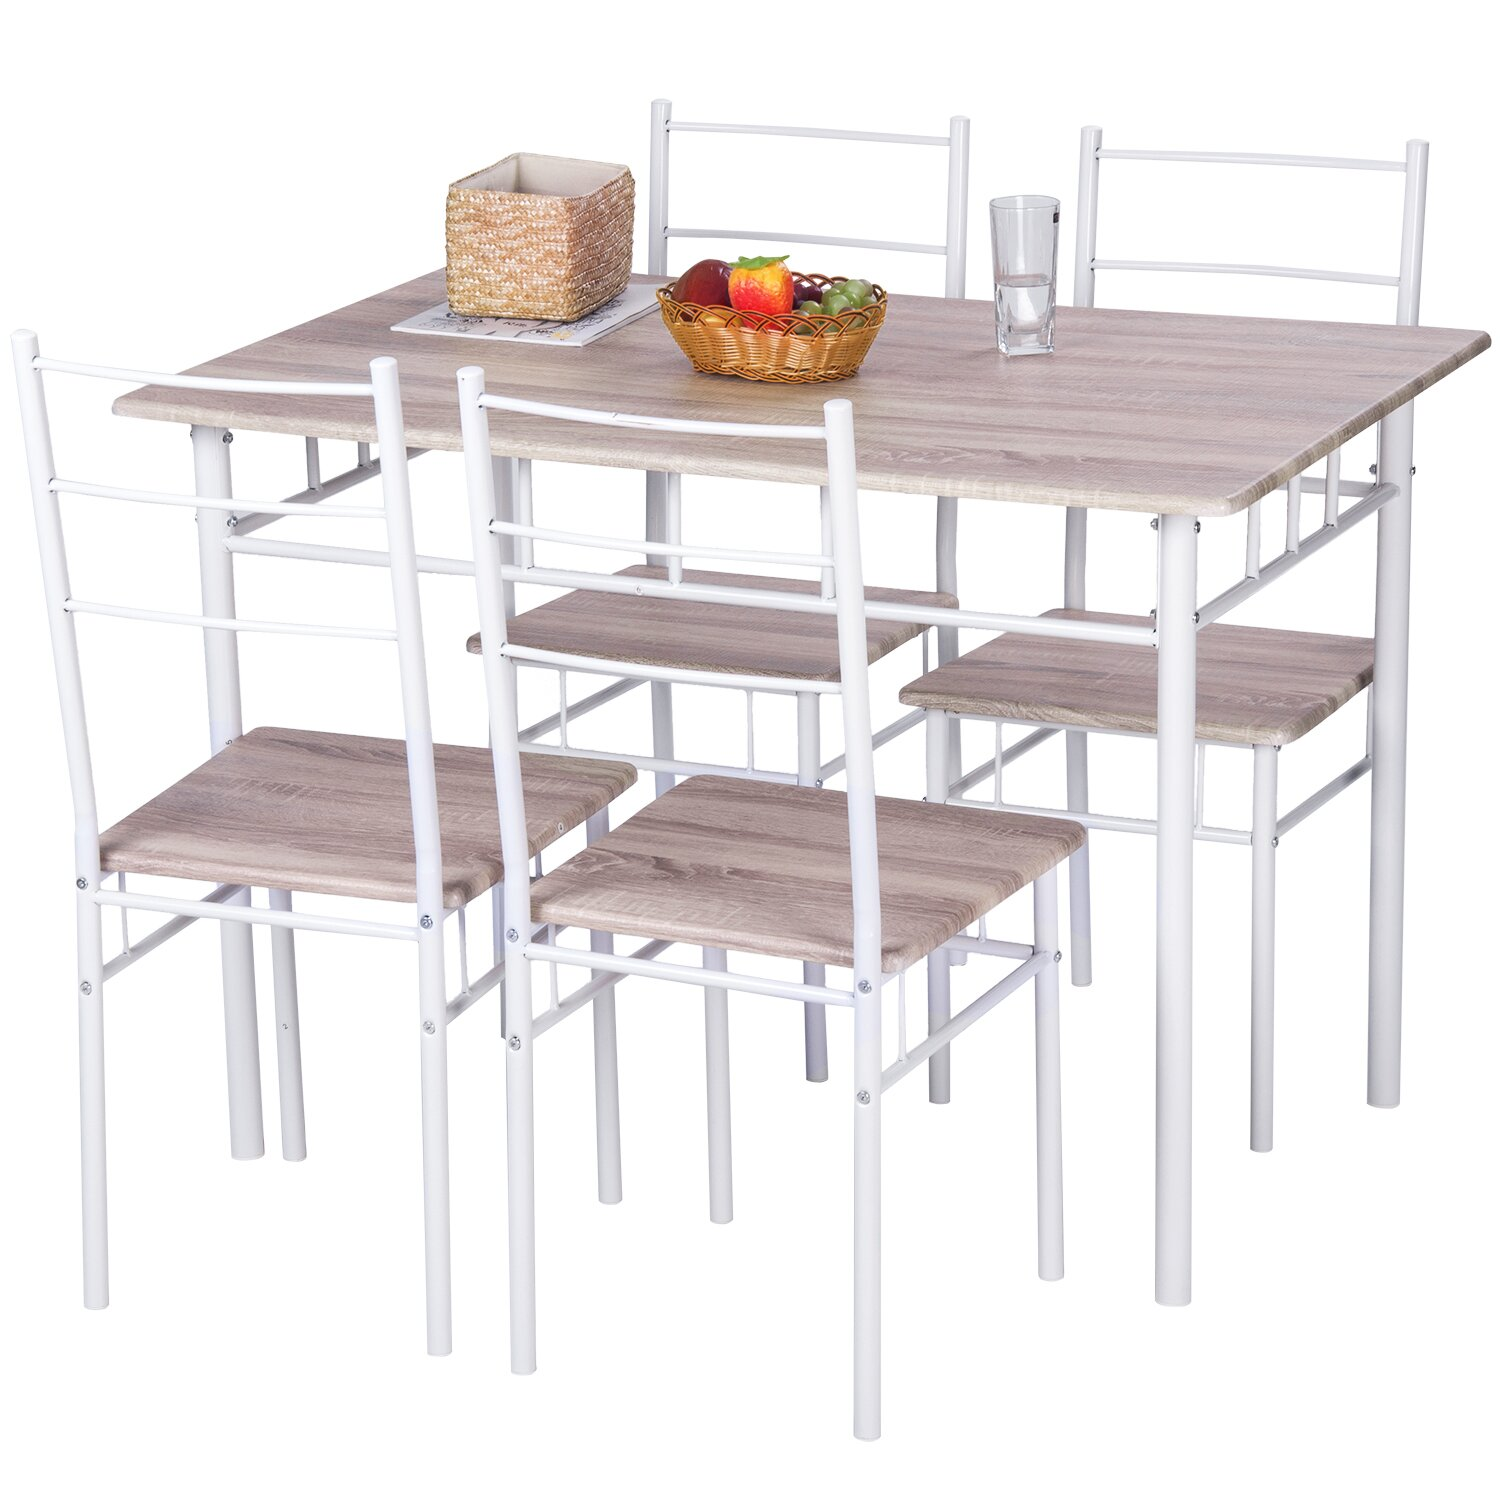 Merax 5 piece dining table set reviews for 13 piece dining table set